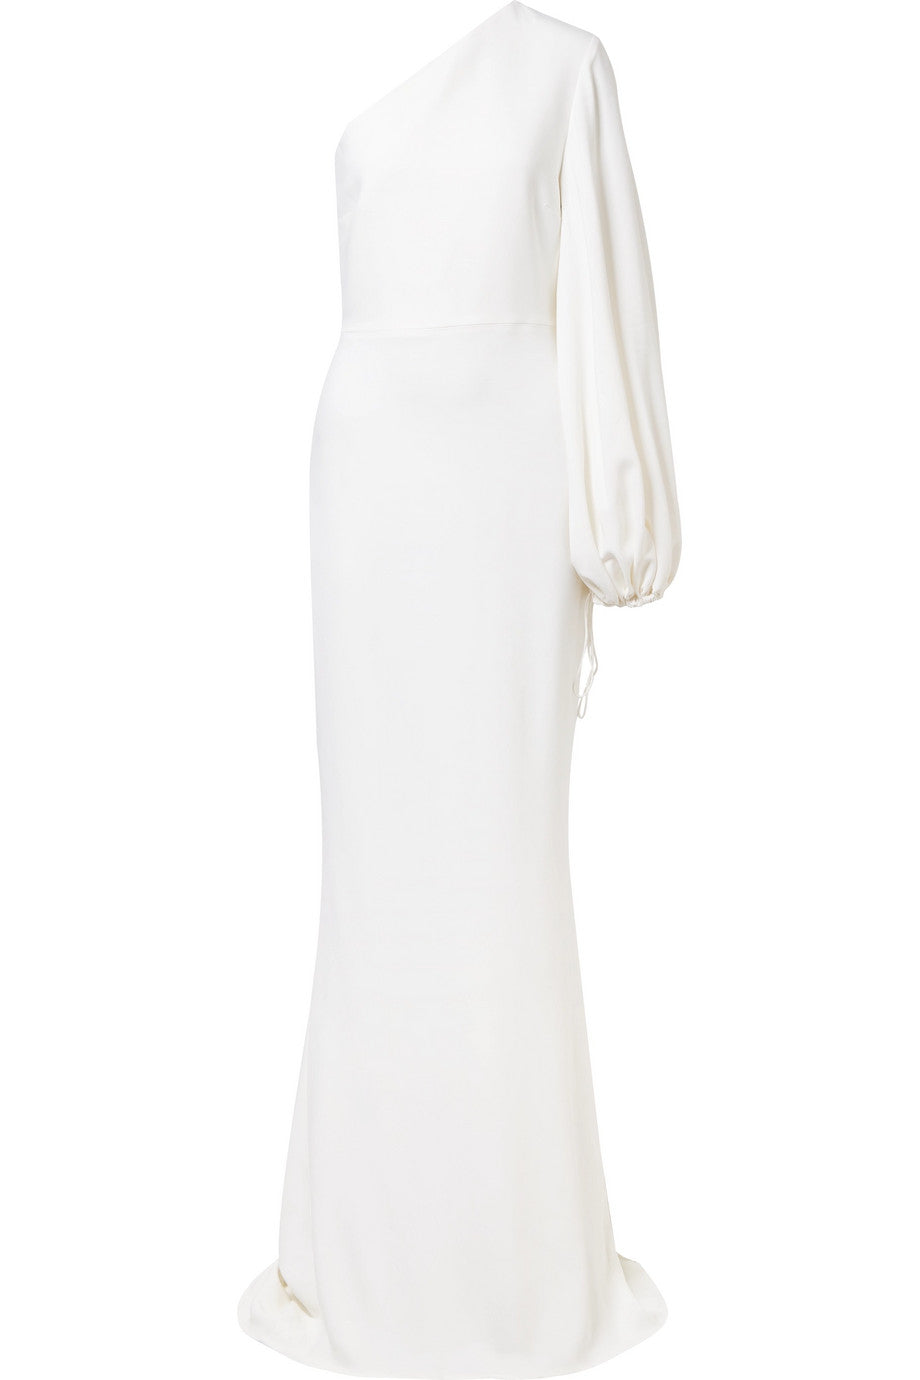 STELLA MCCARTNEY One-shoulder stretch-cady gown